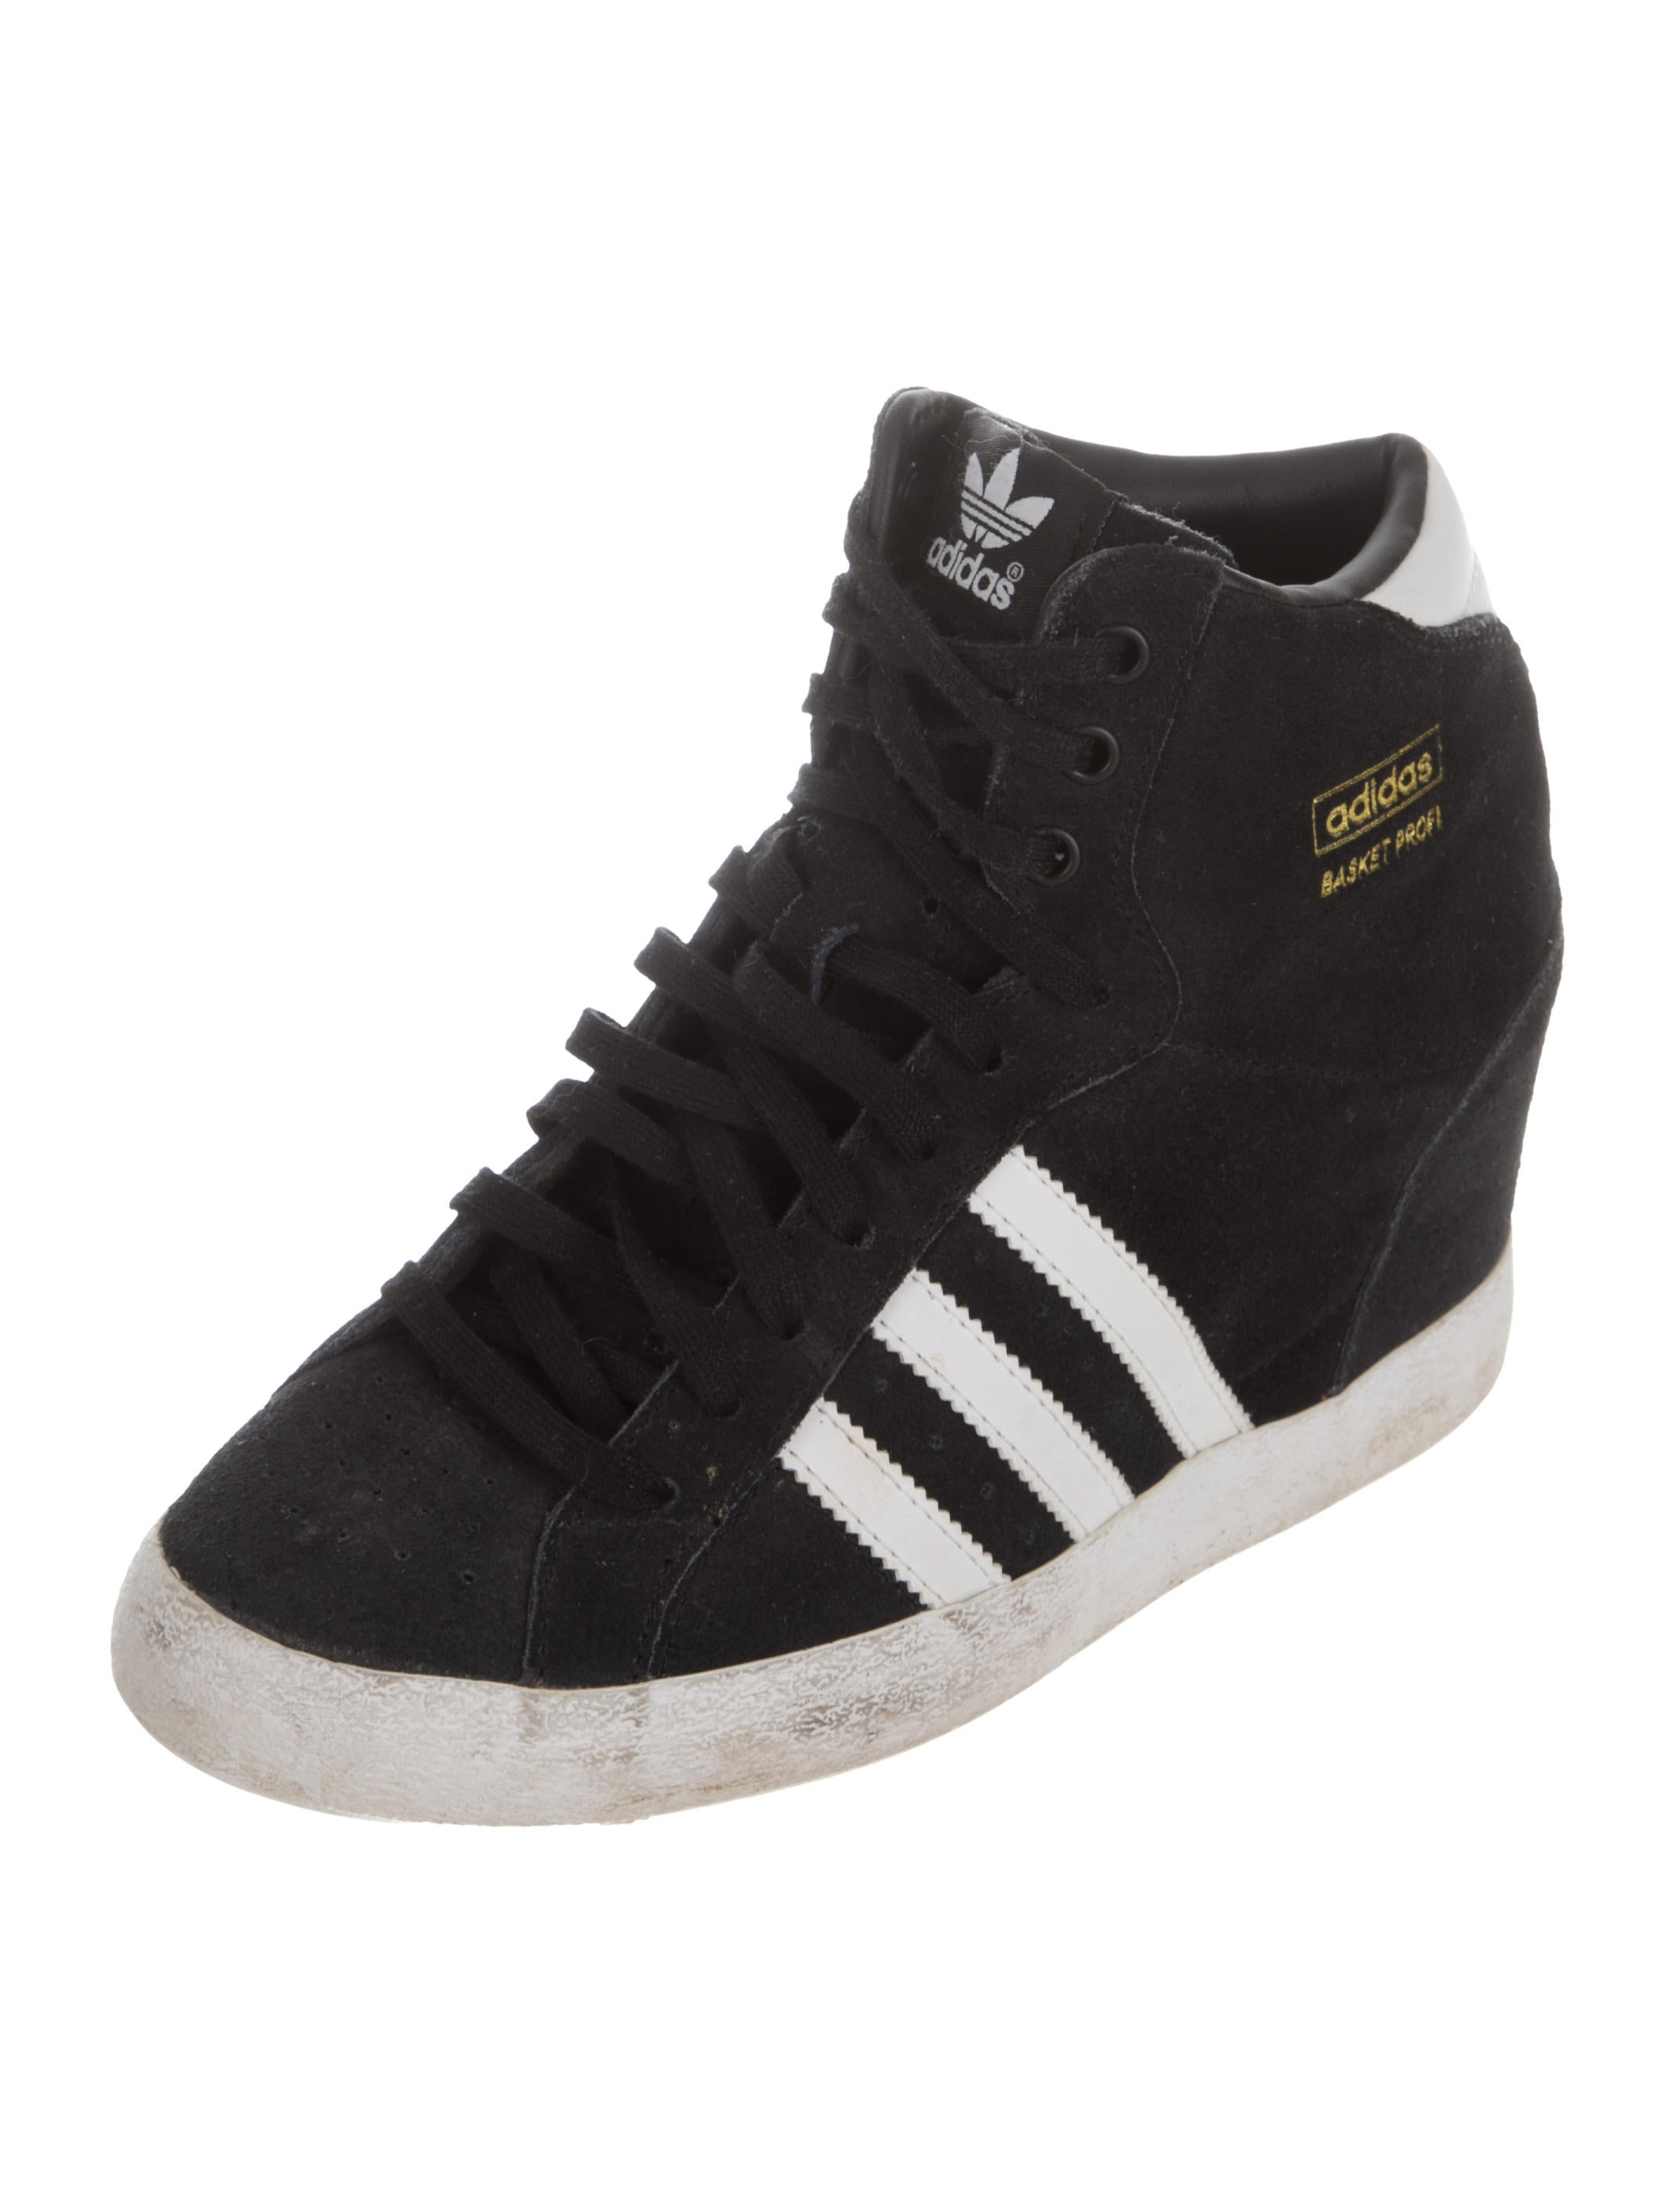 hot adidas neo wedge sneakers 2cfbb d4319